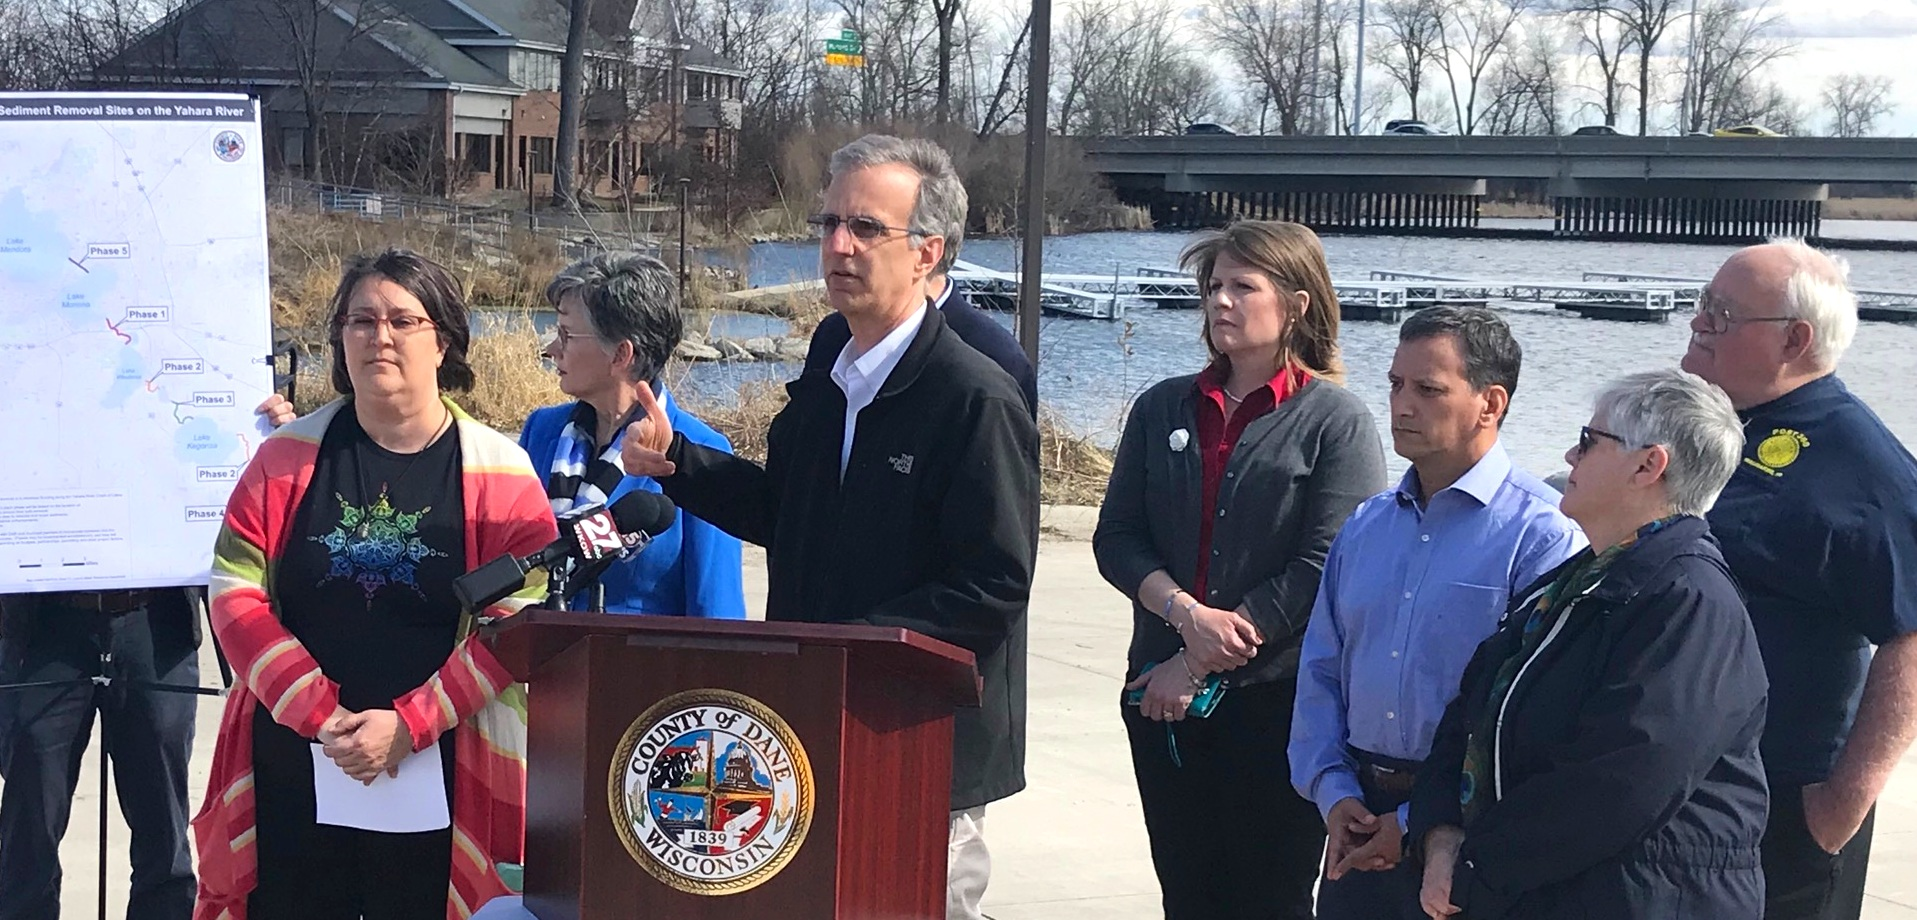 County Executive Parisi at Lottes Park announcing Lake Level Recommendations